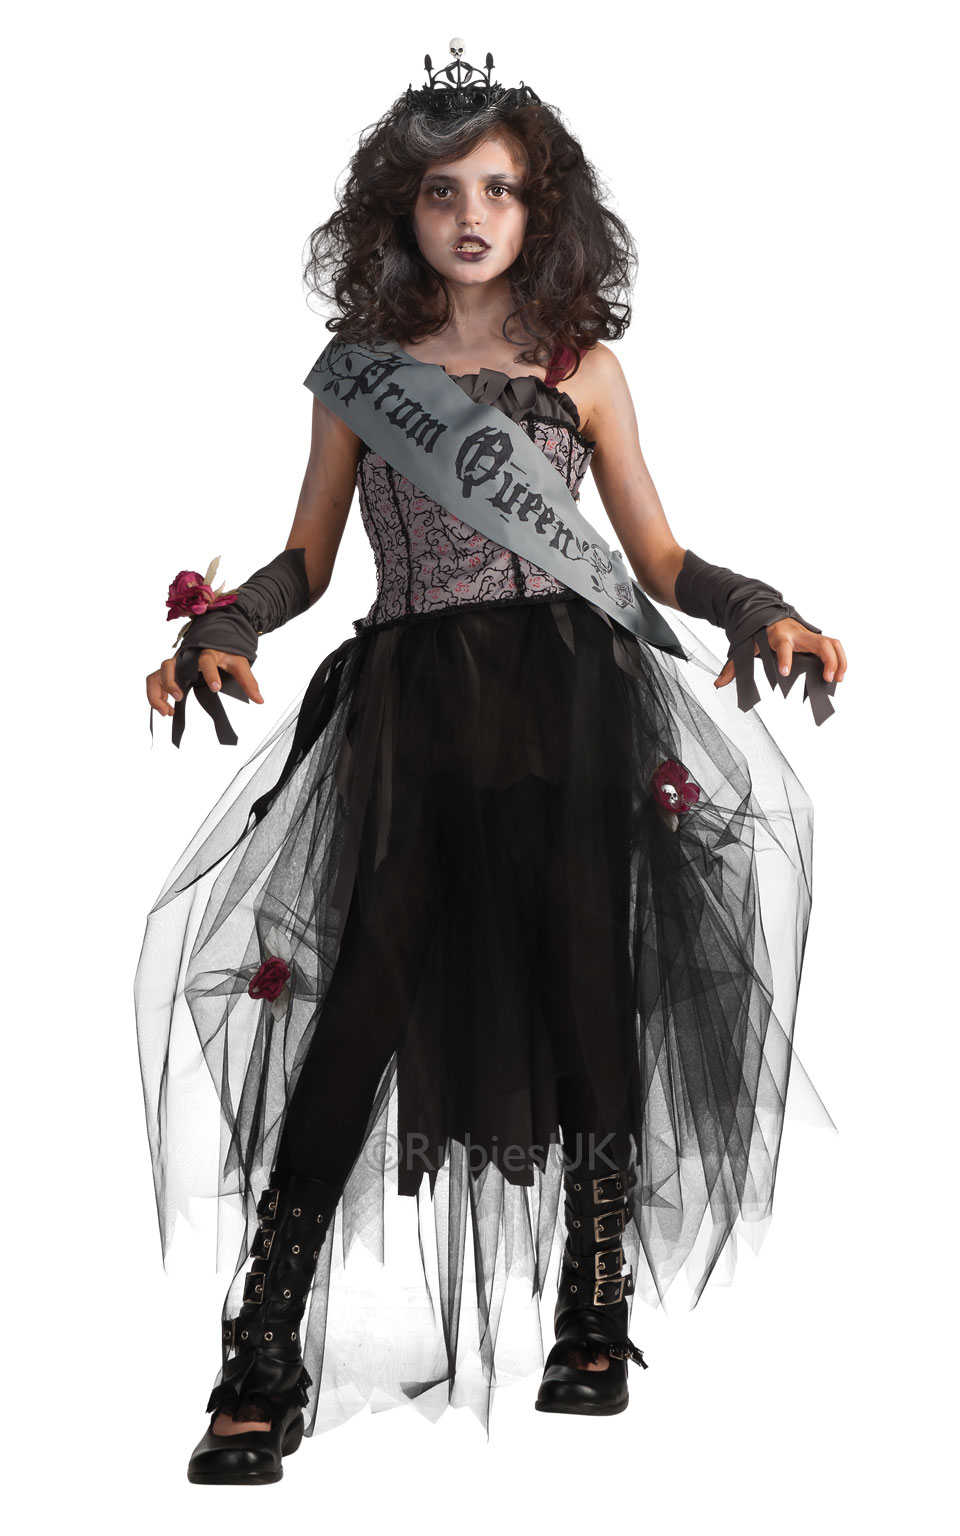 Halloween Vampire Costume Kids.Details About Goth Prom Queen Zombie Girls Halloween Fancy Dress Childs Kids Vampire Costume